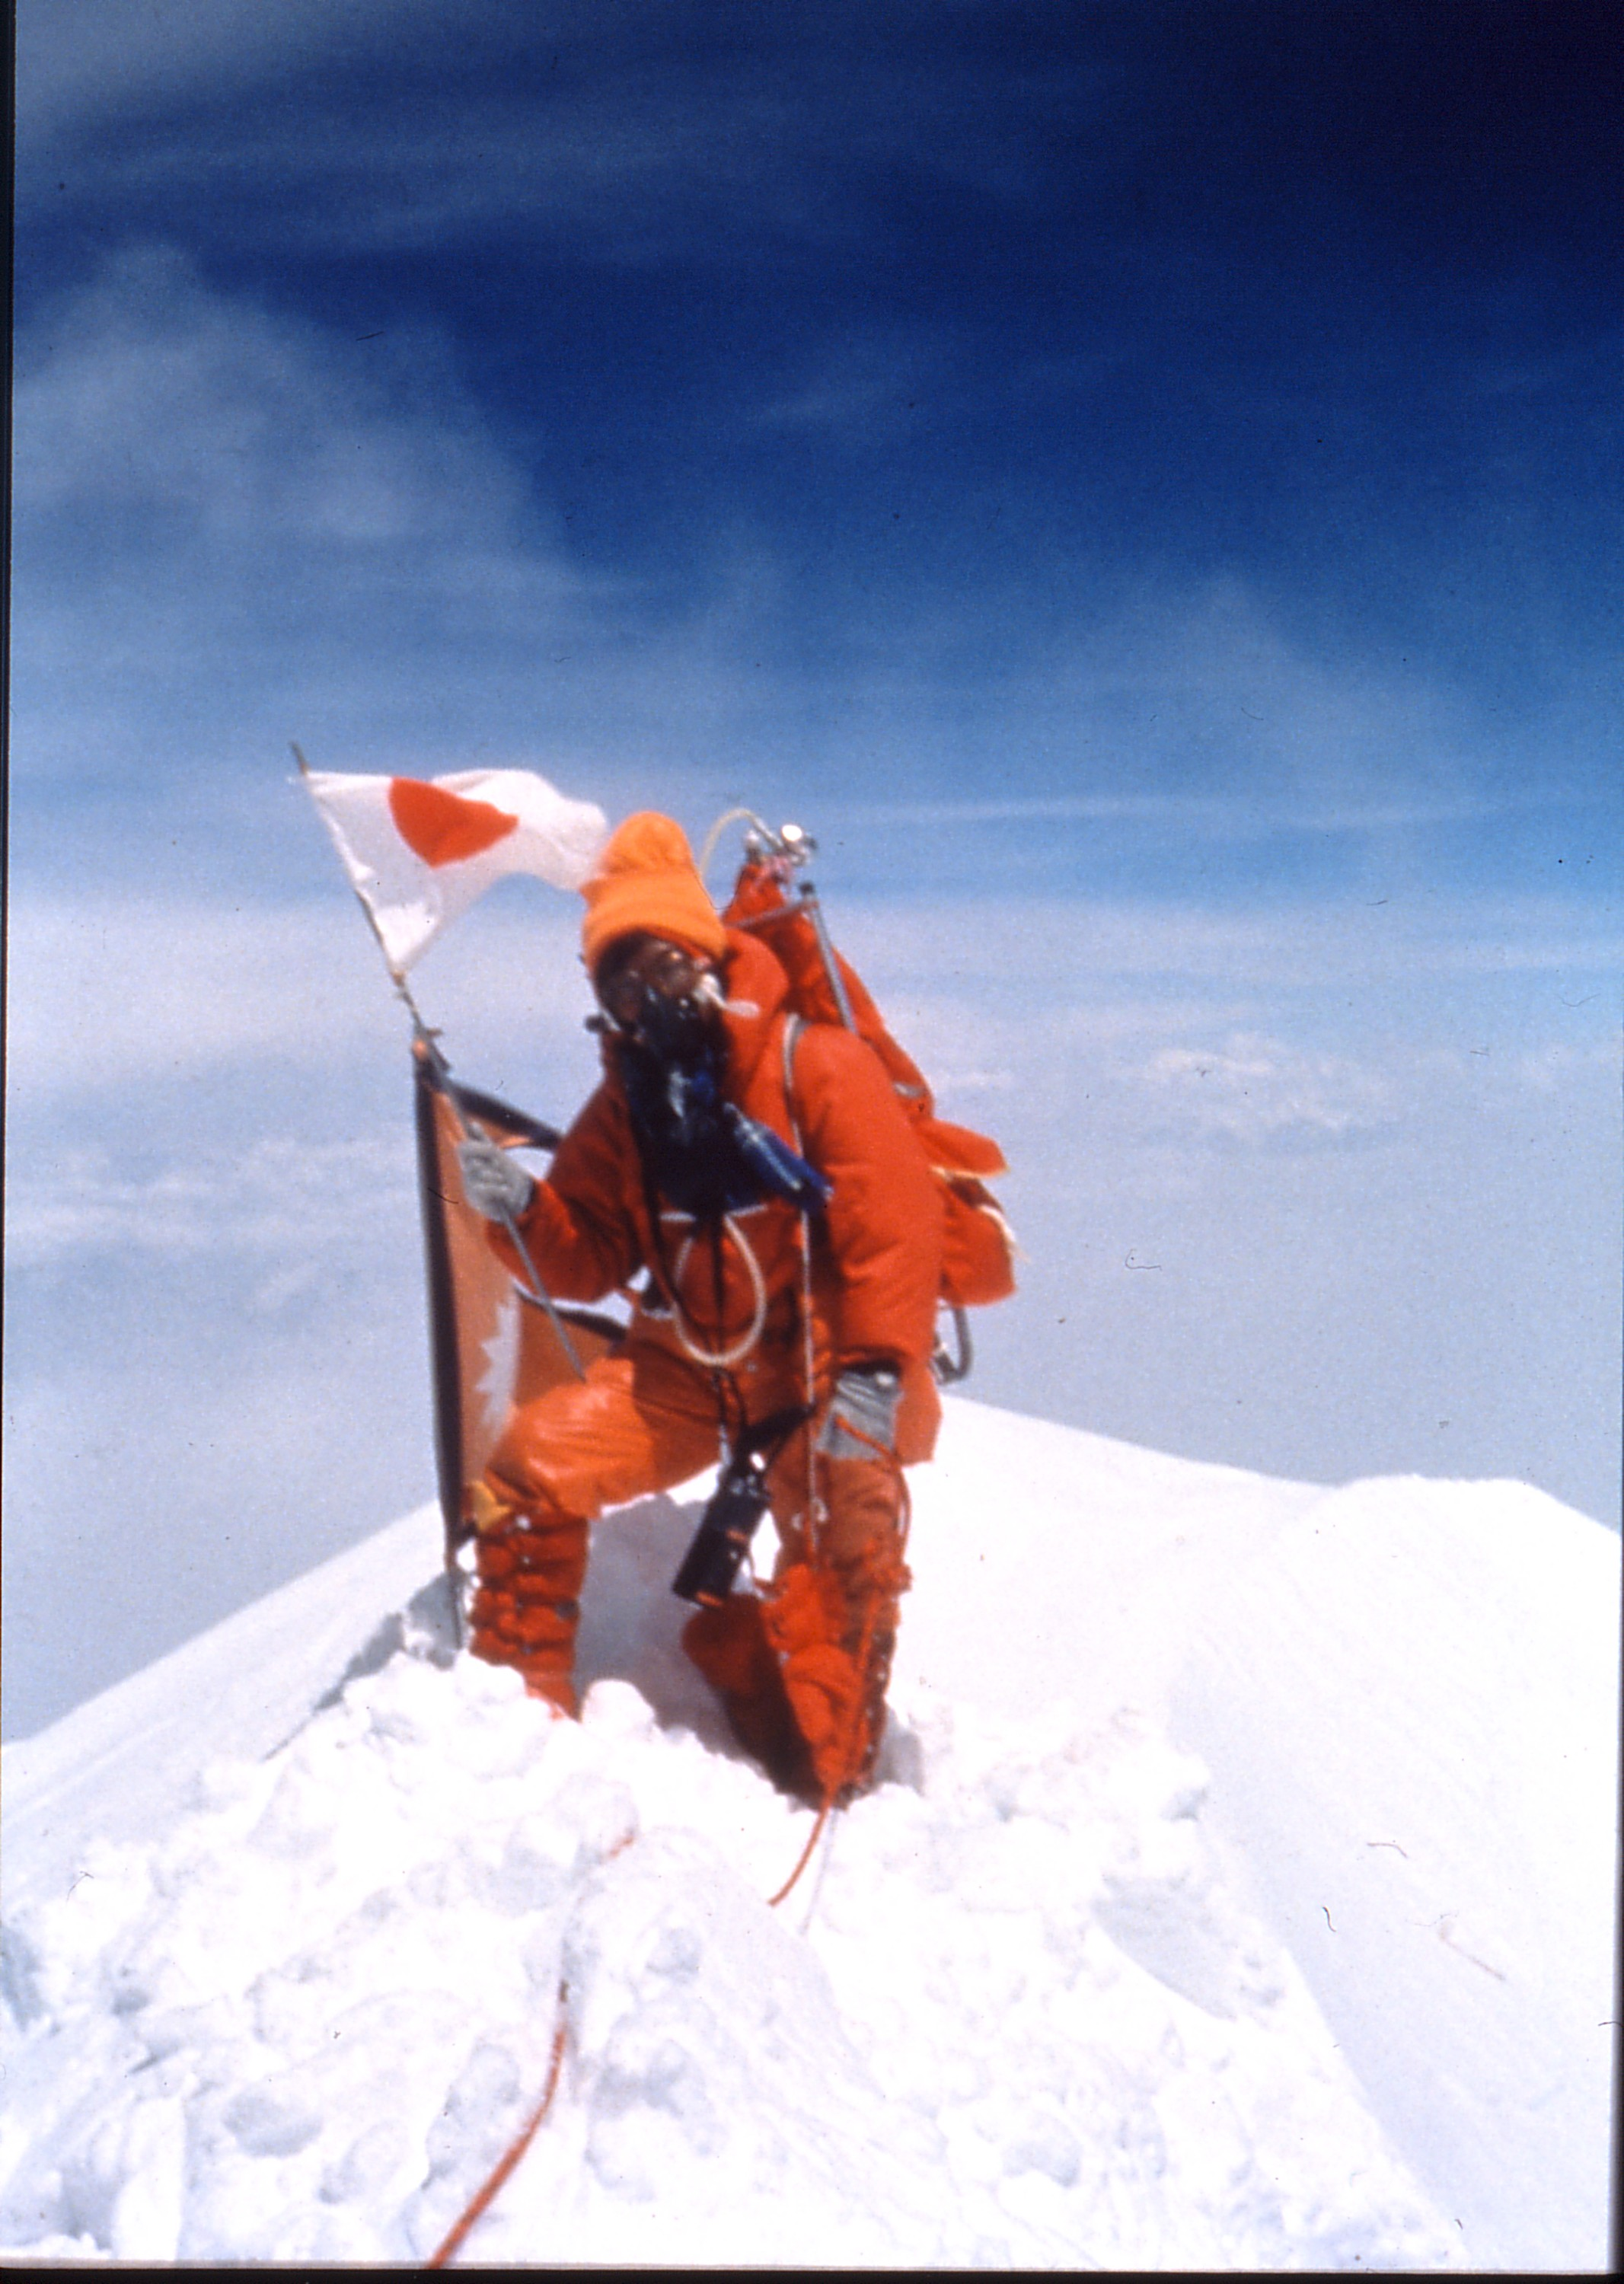 Junko Tabei at the summit of Mount Everest